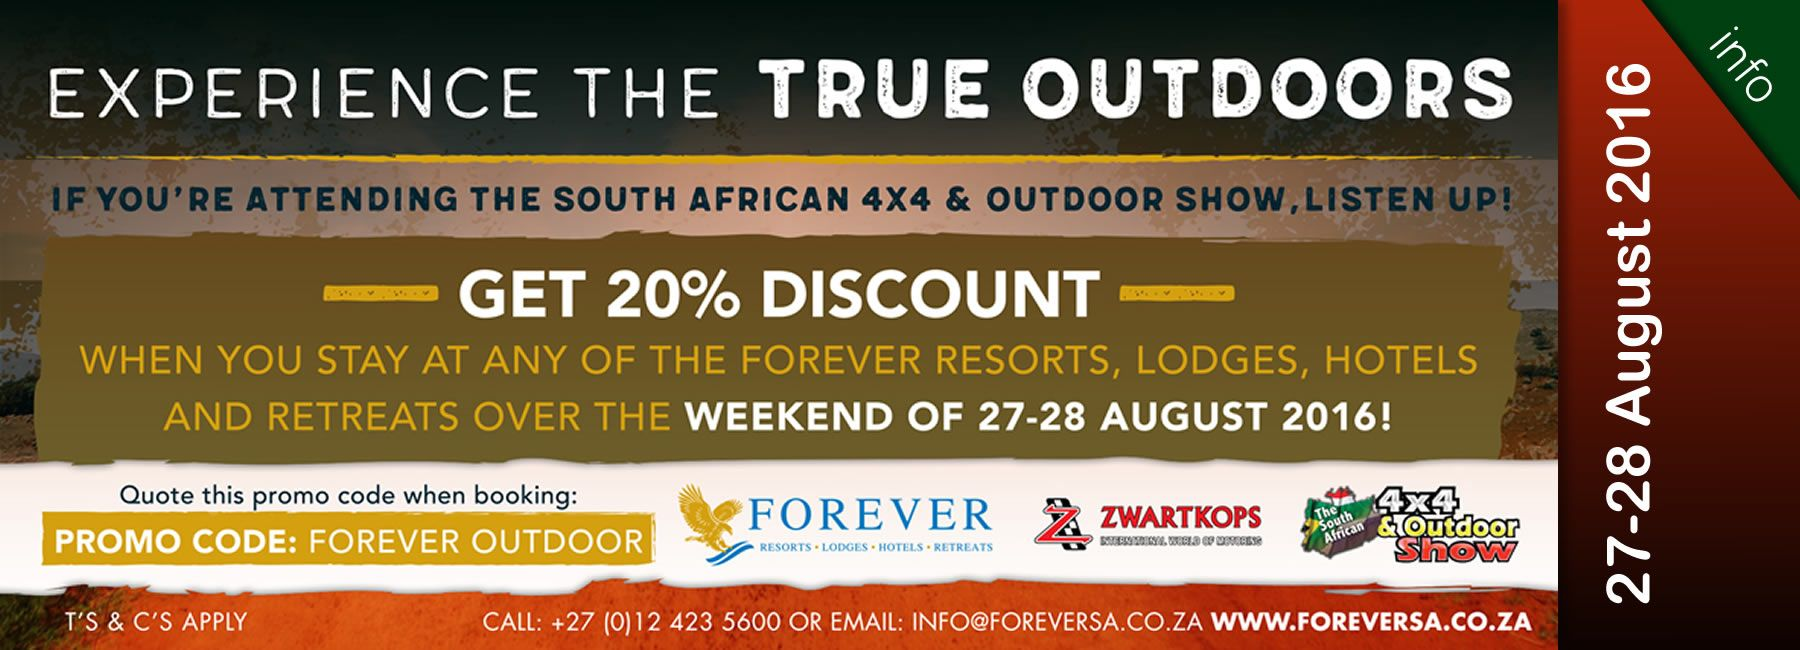 Get 20% discount - Experience the true outdoors